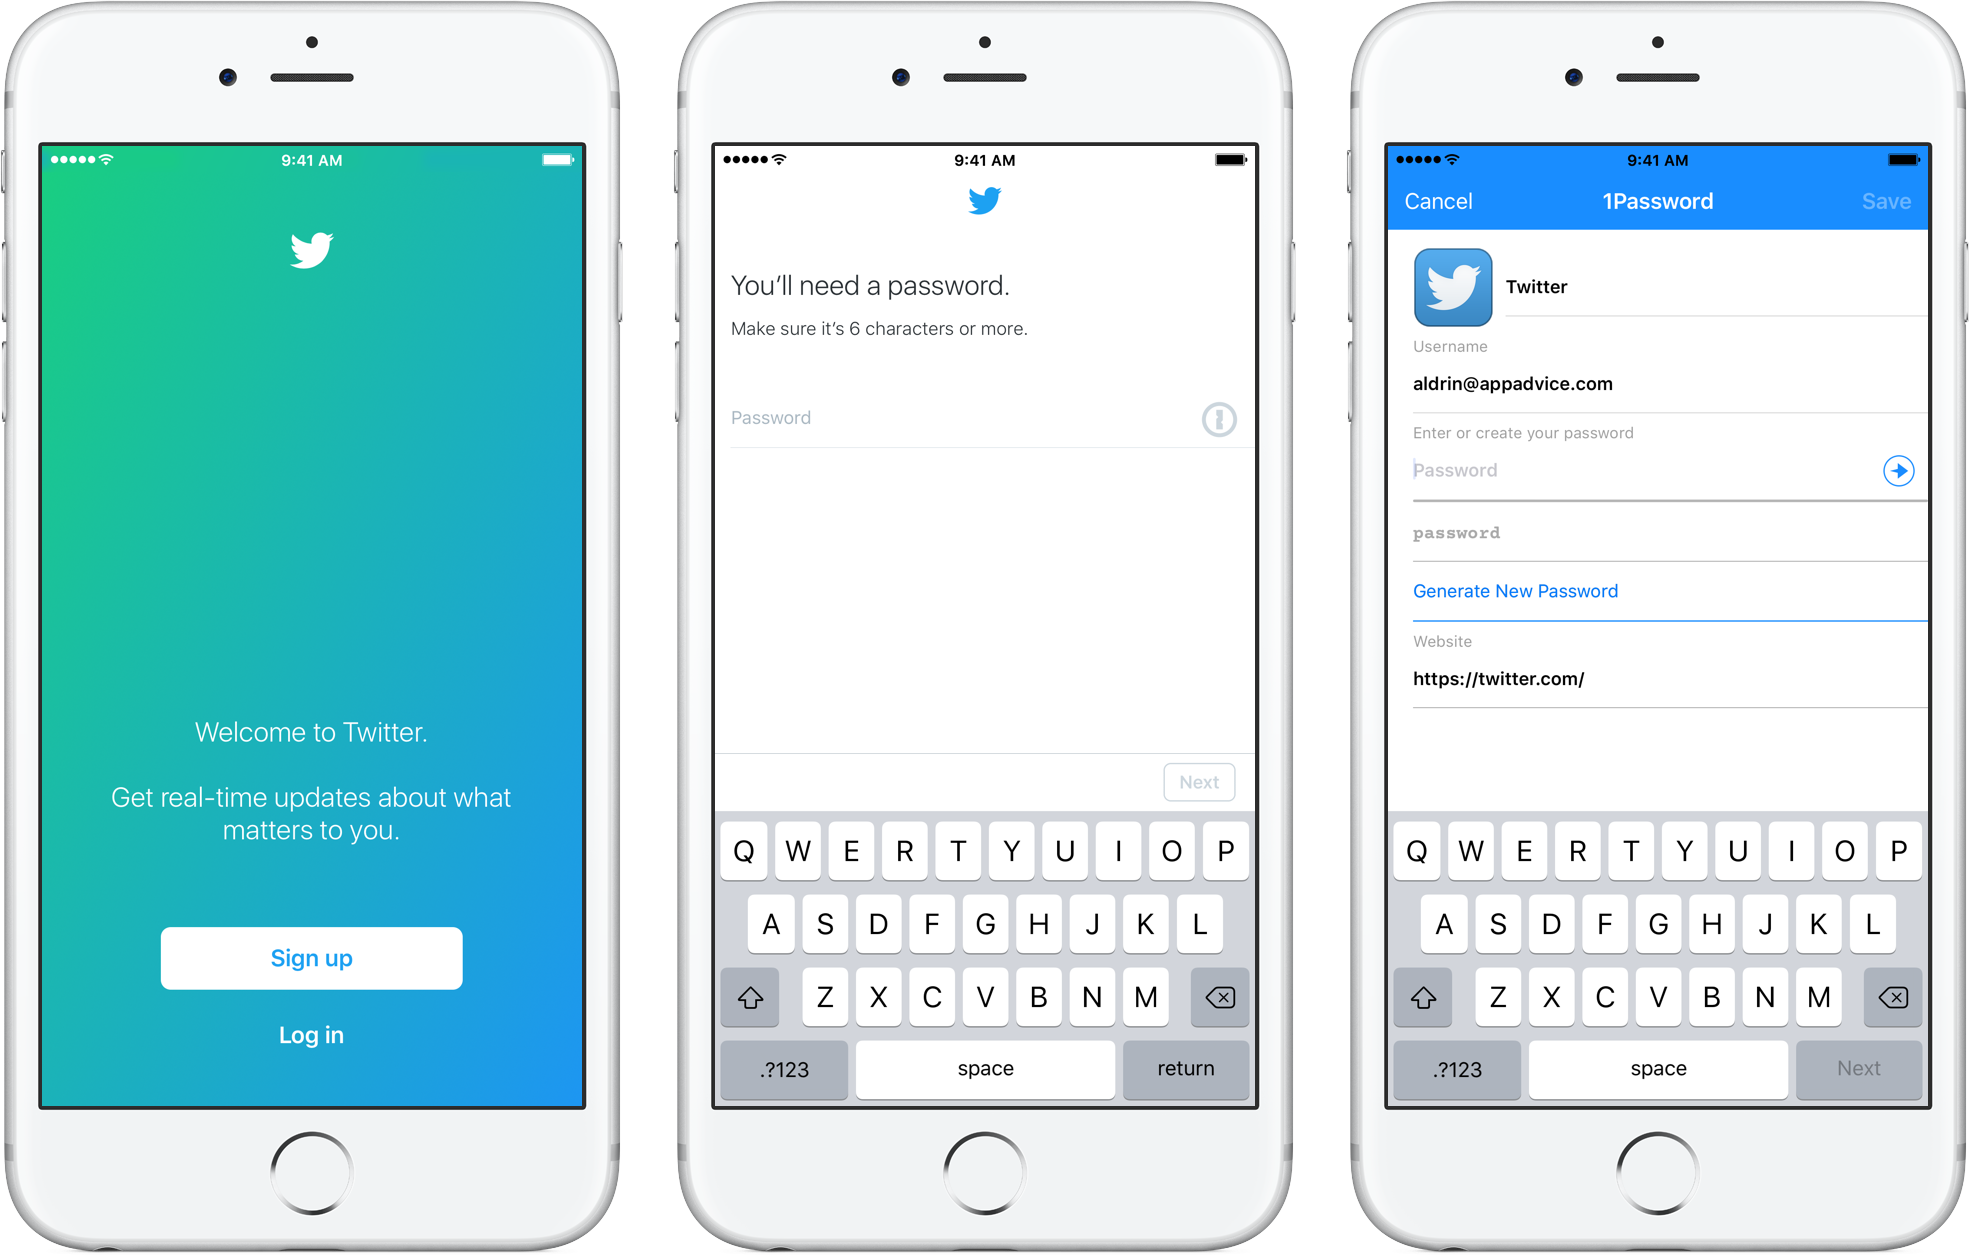 Twitter 1Password sign-up